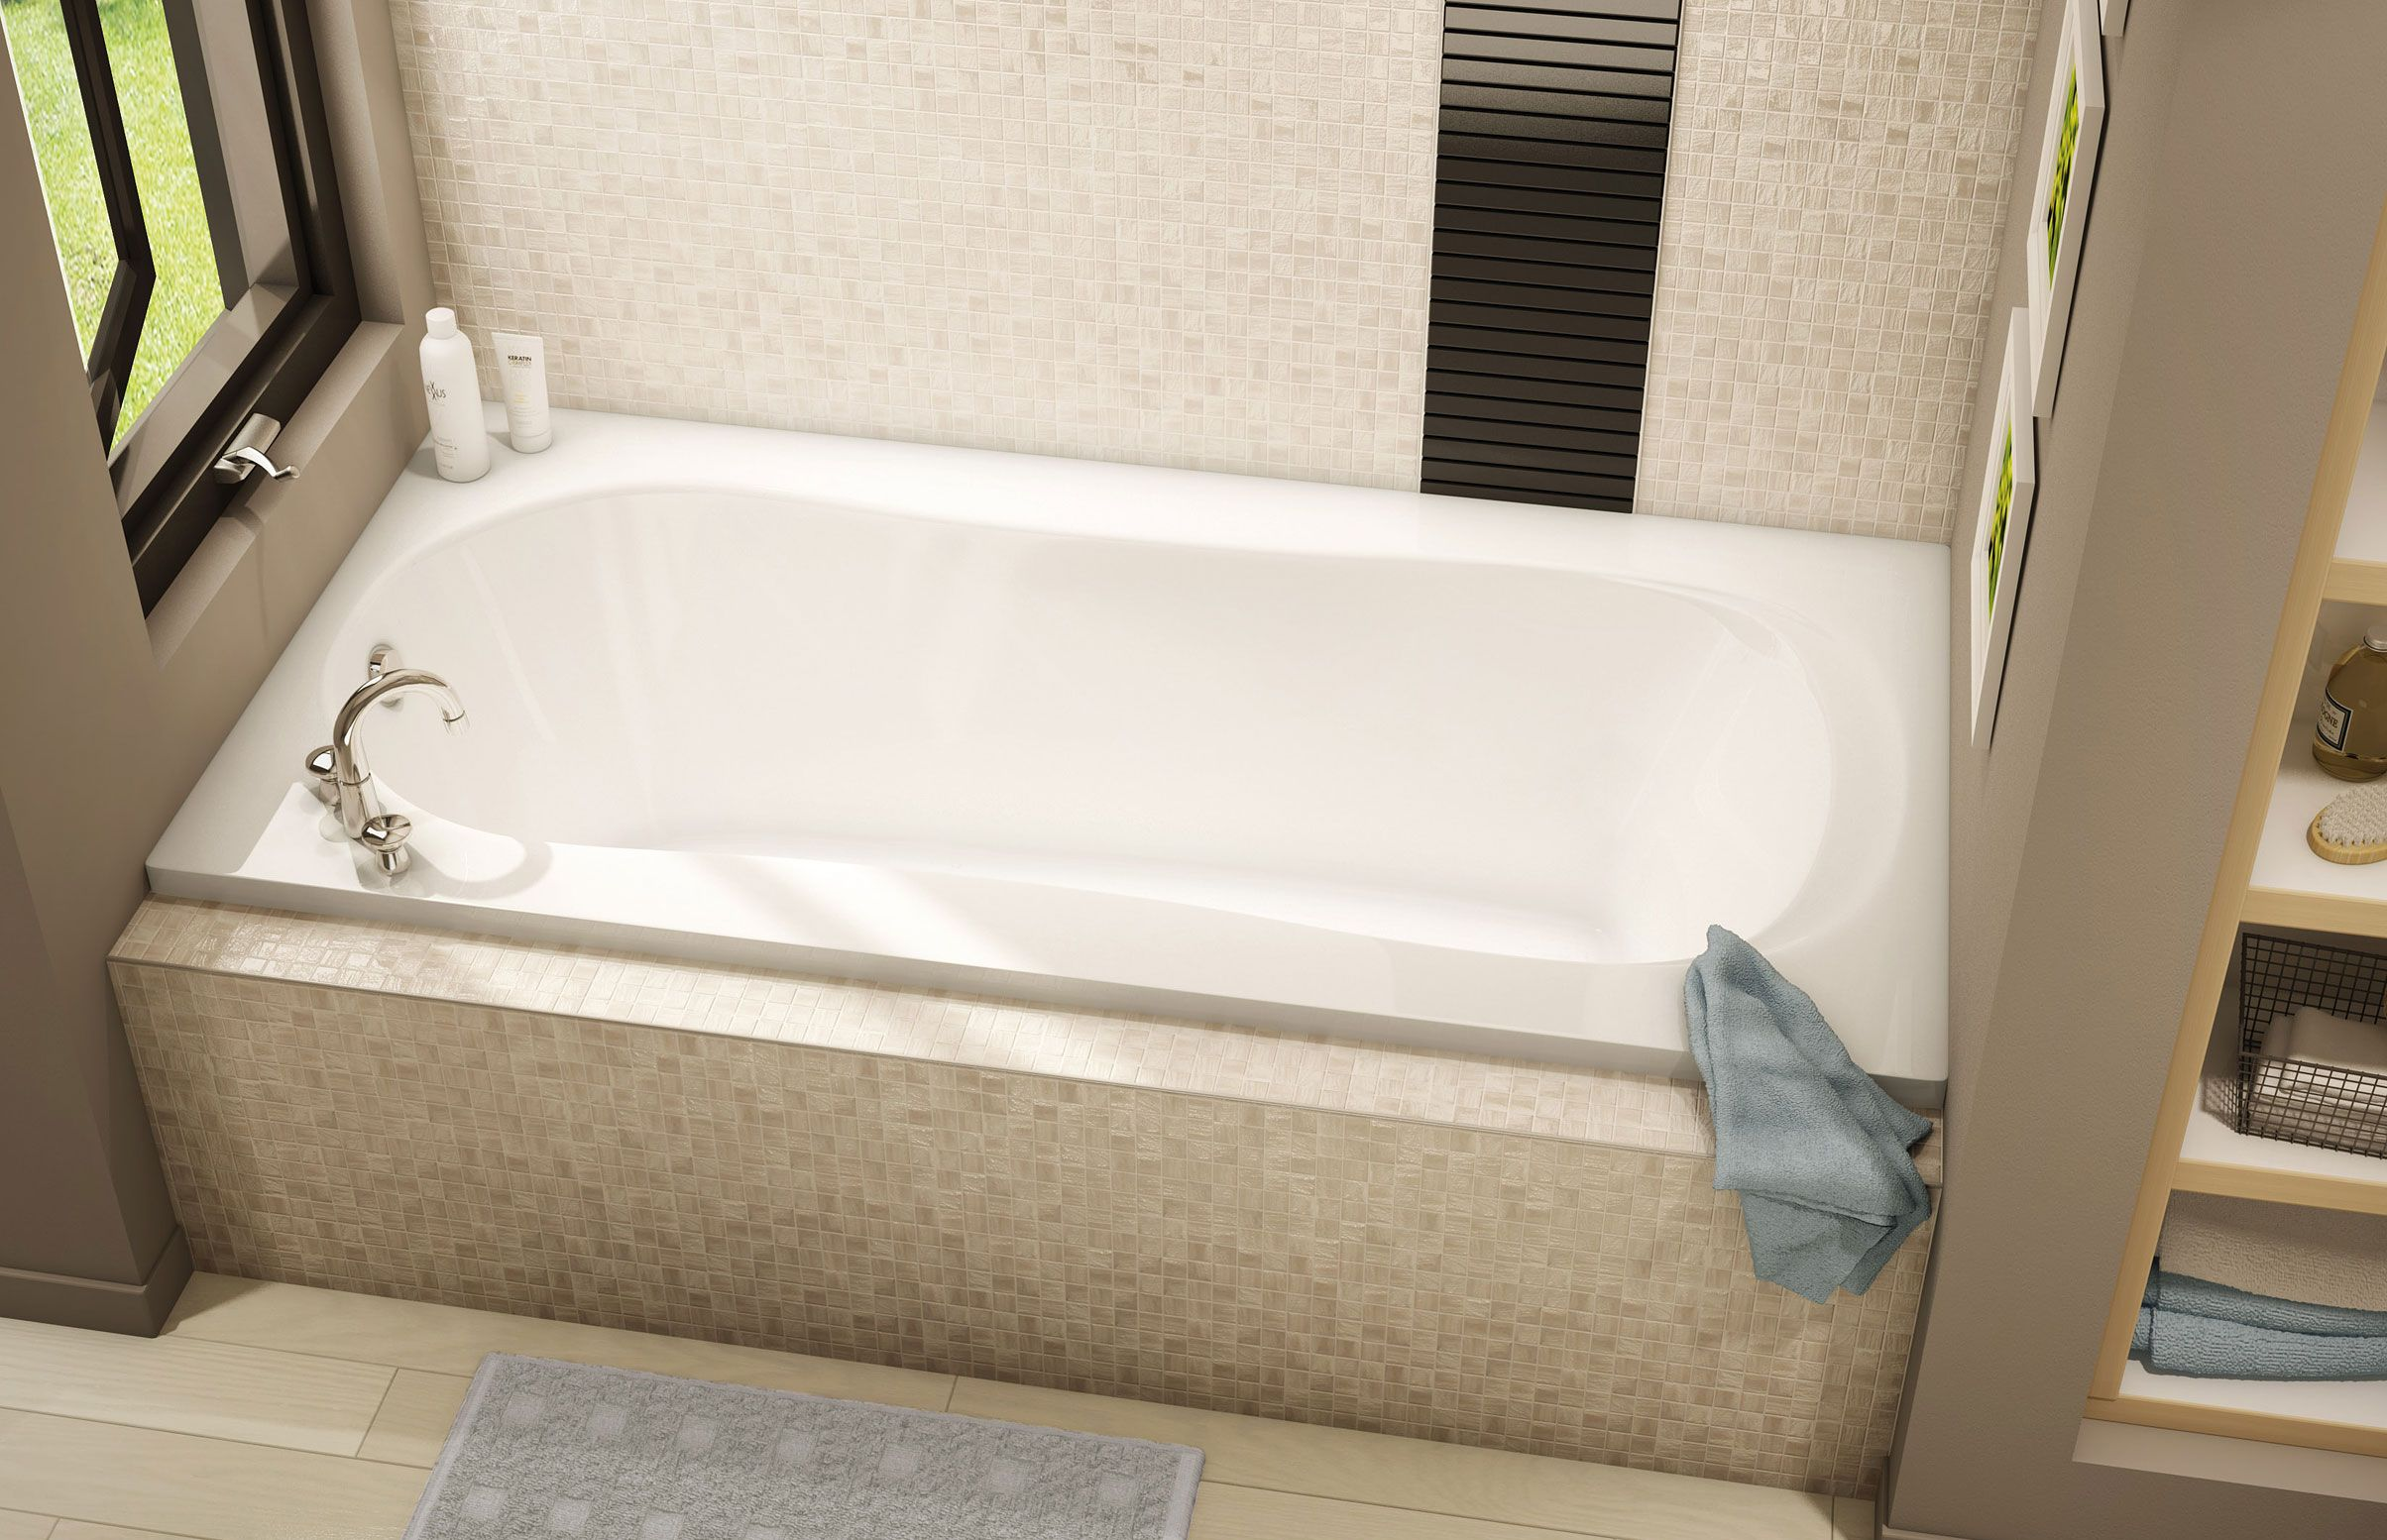 CS 32/53/553/63 NS Alcove or Drop-in bathtub - Pearl | BATHTUBS ...